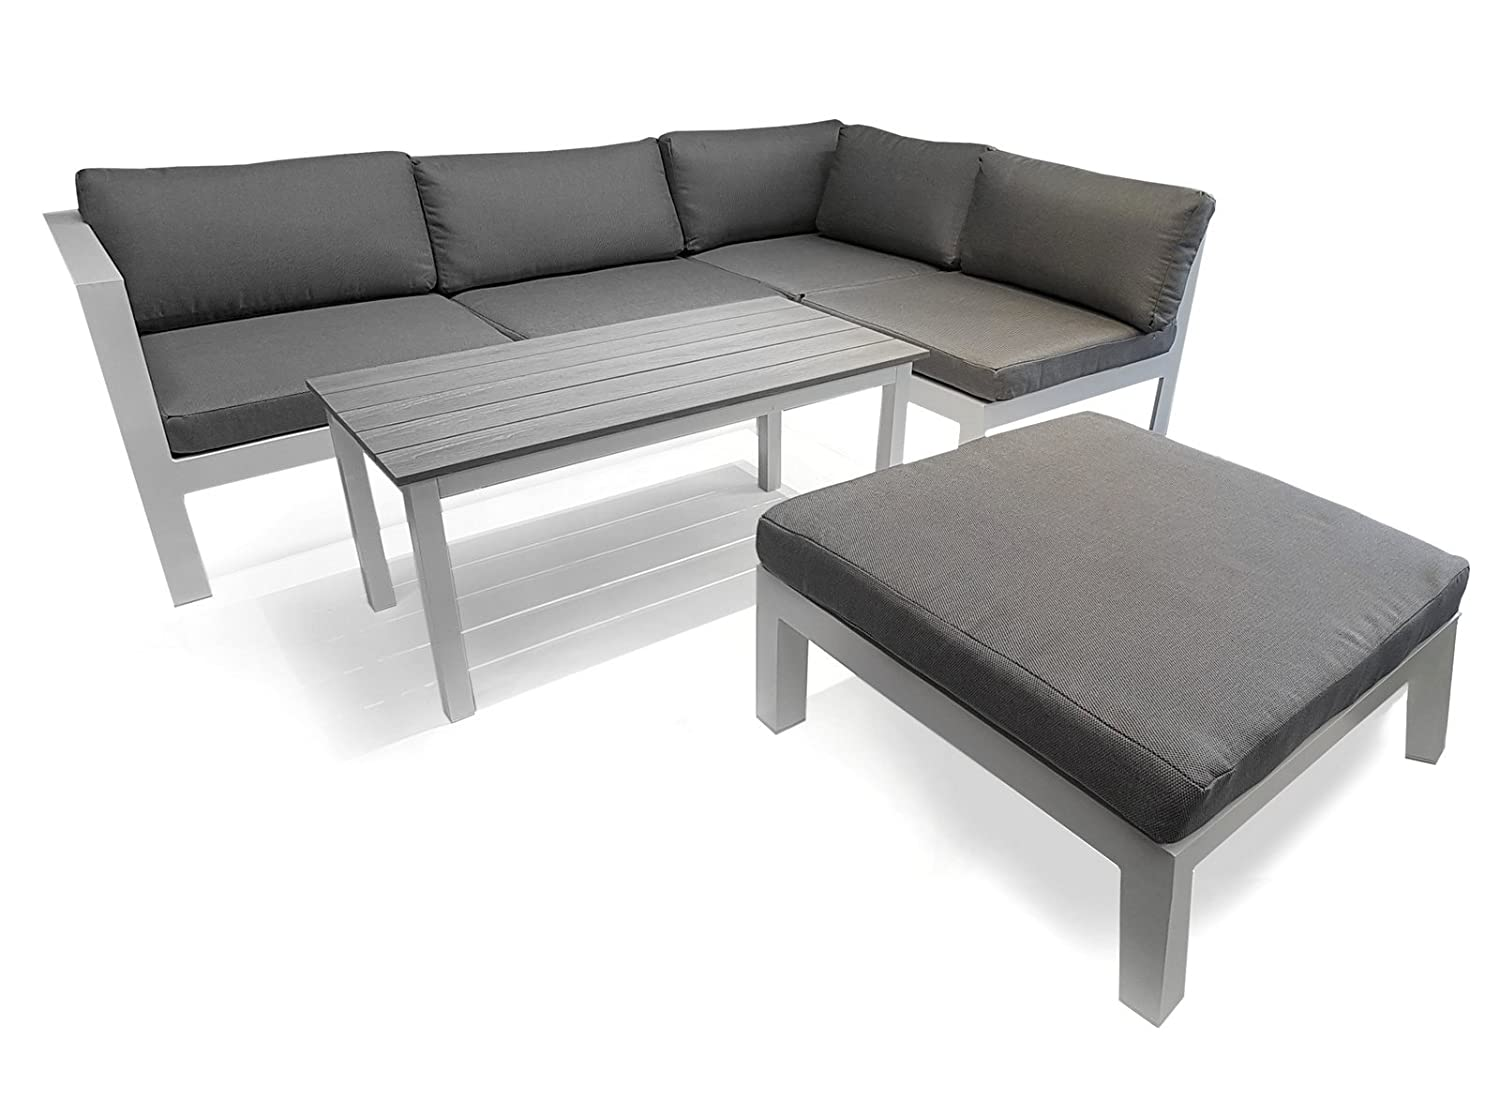 osoltus gartenlounge aluminium lounge copenhagen modern weiss kaufen. Black Bedroom Furniture Sets. Home Design Ideas